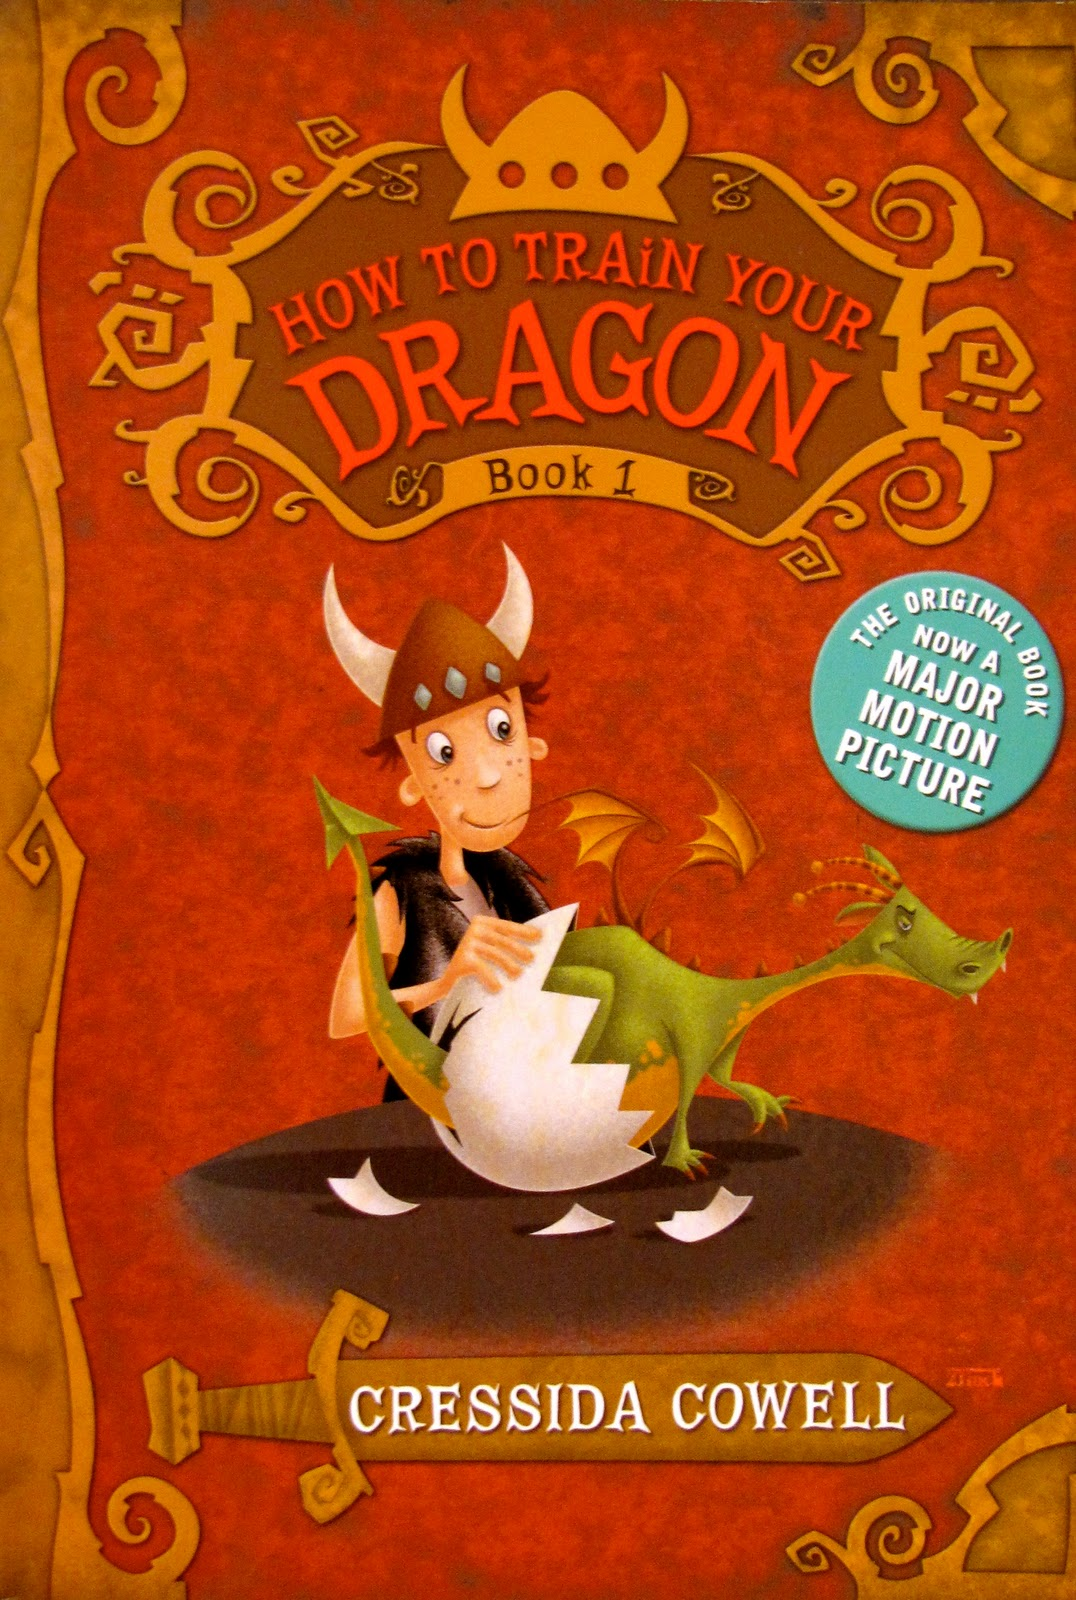 Cowell - How to train your dragon book